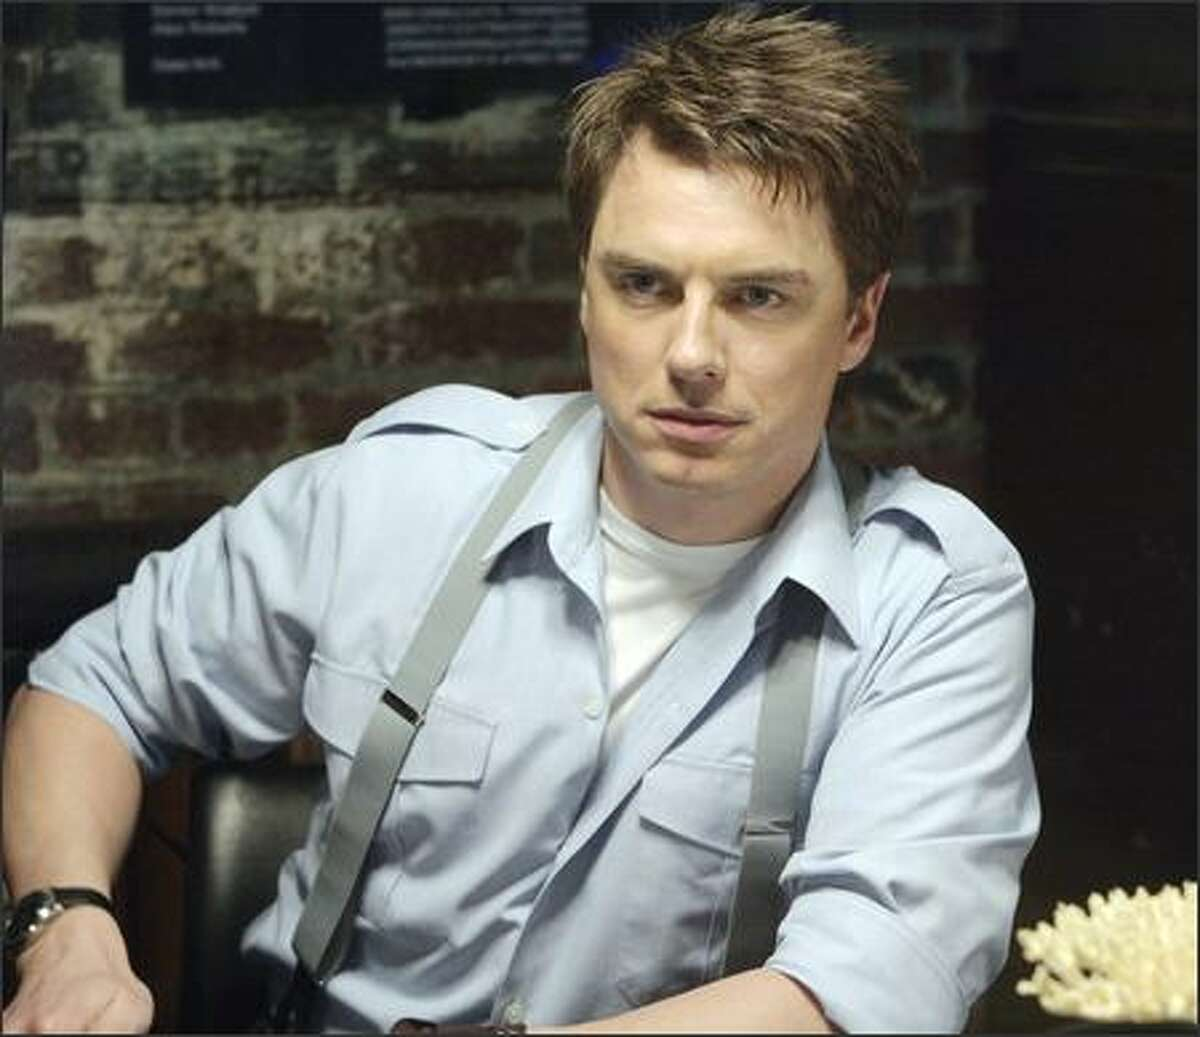 Capt. Jack Harkness (John Barrowman) and his team hunt aliens and collect strange technology.